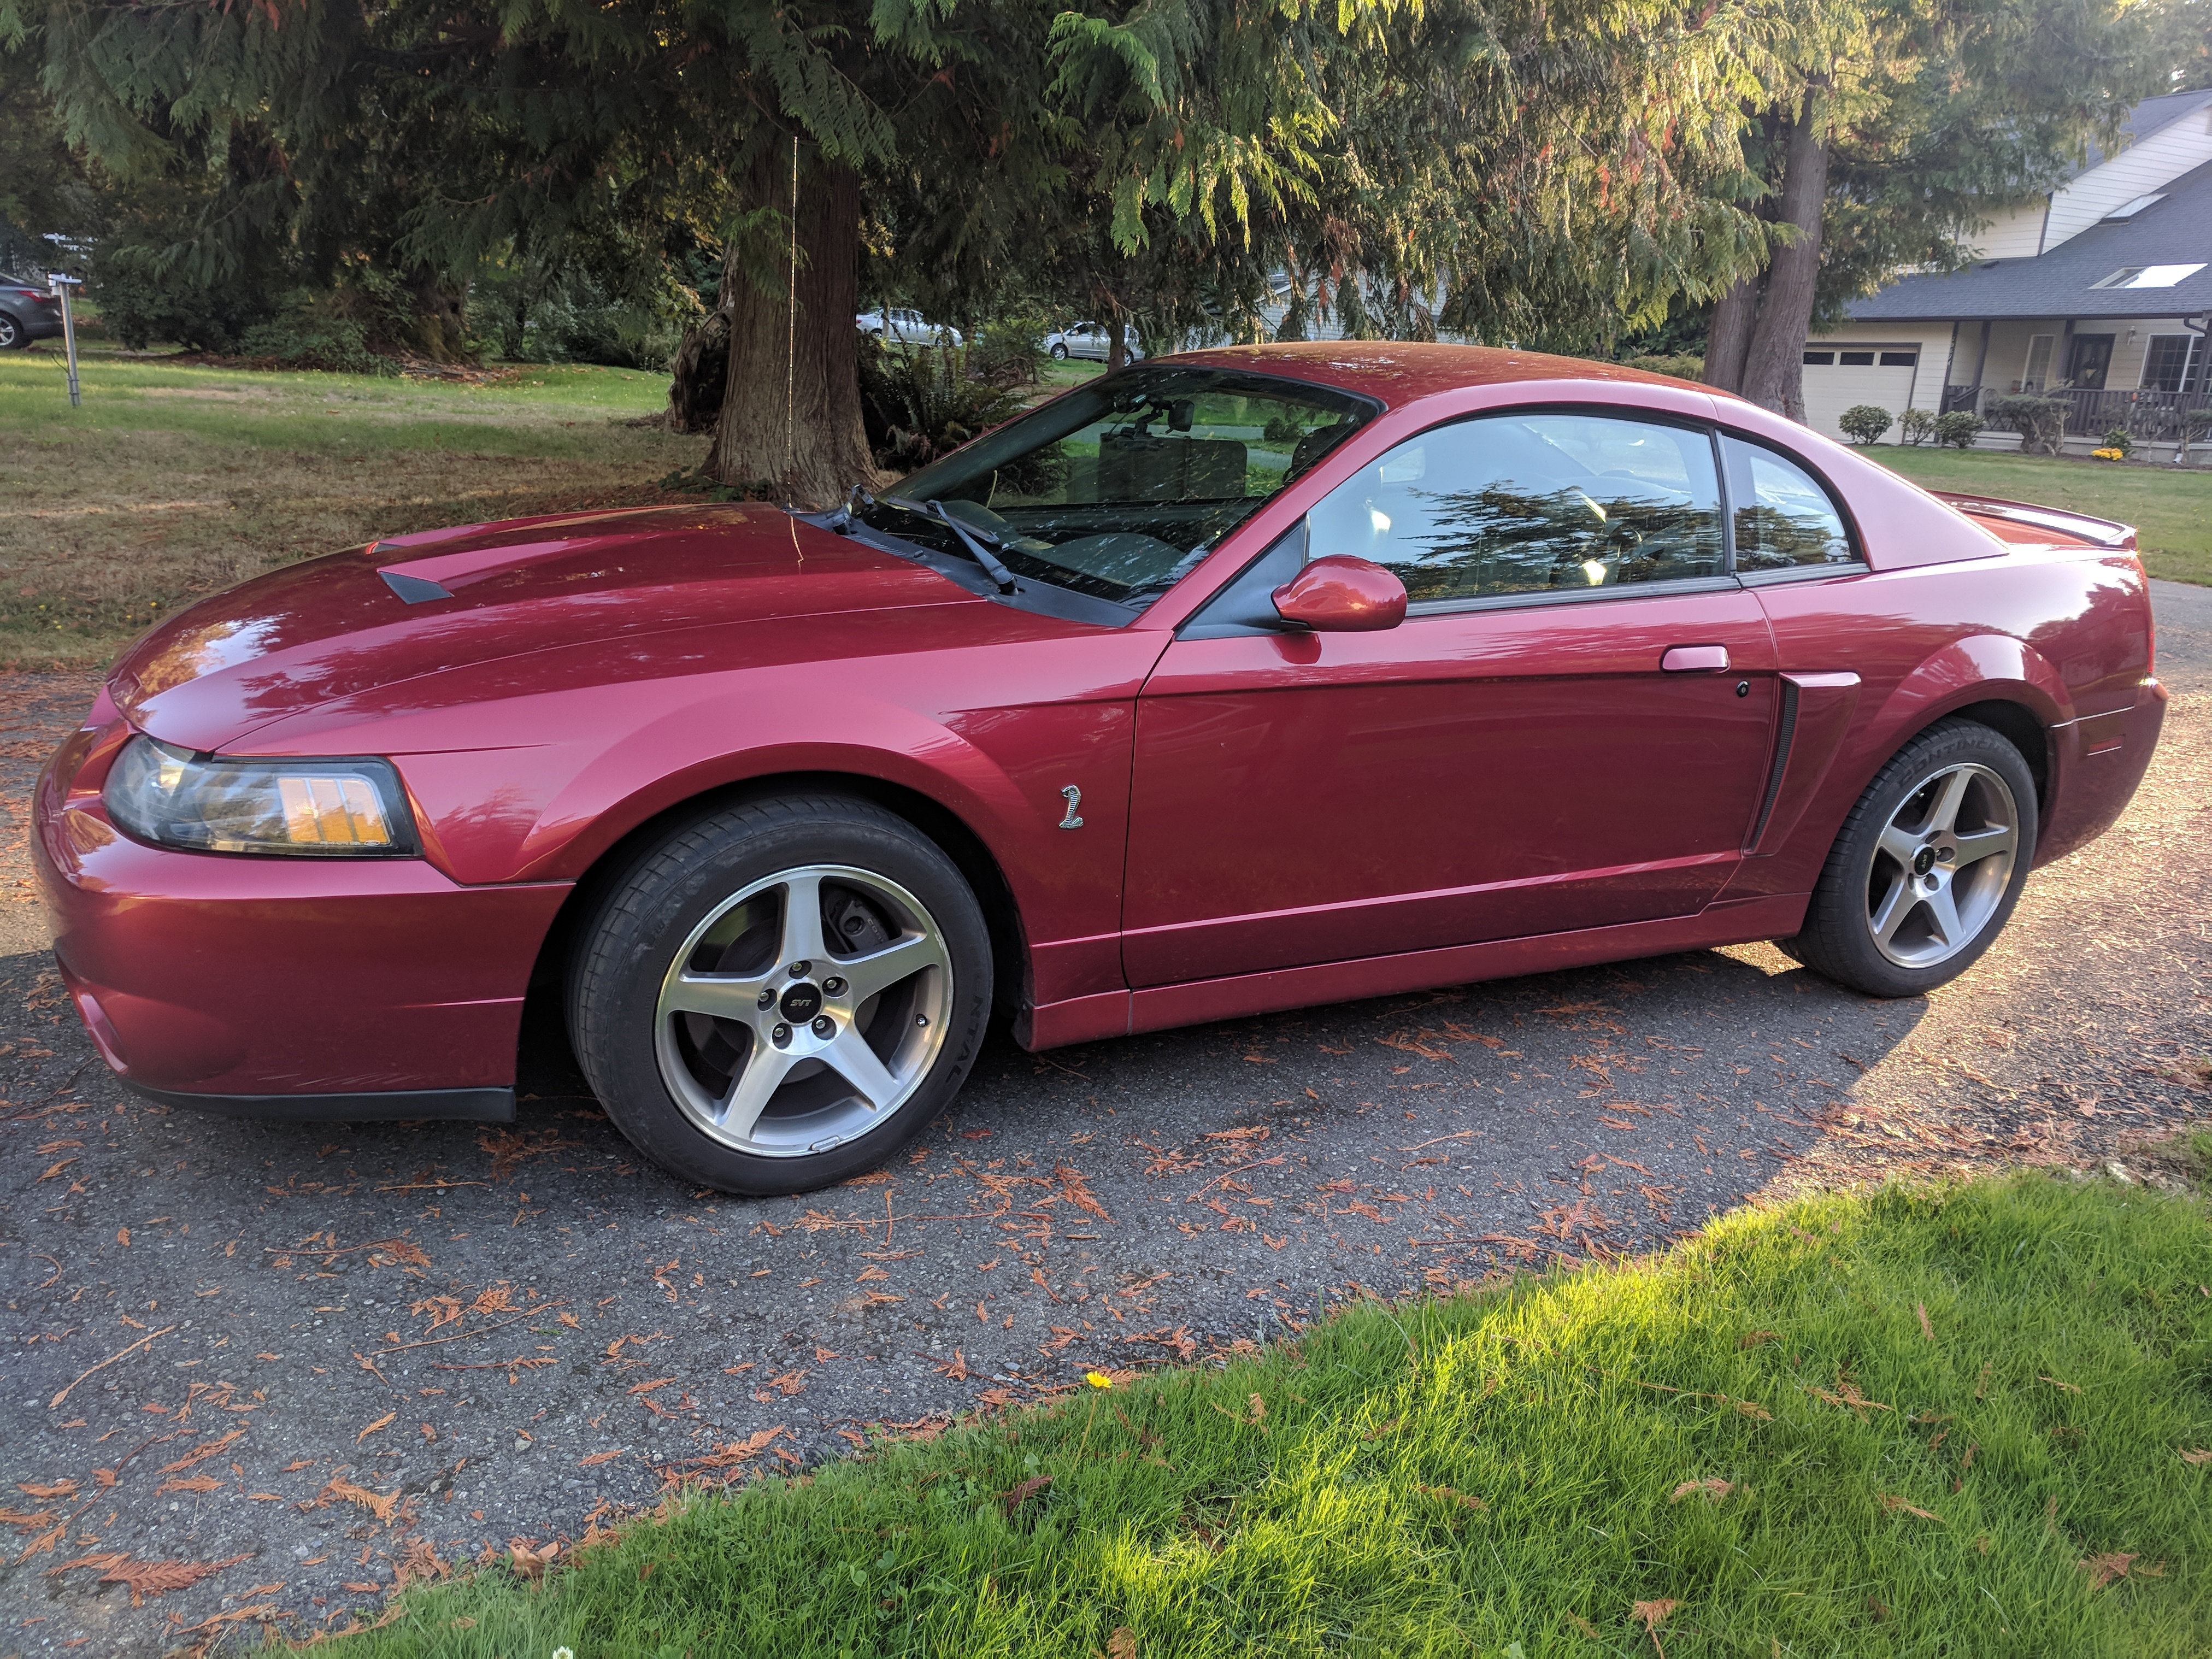 Used 2003 Ford Mustang For Sale in Silverdale WA